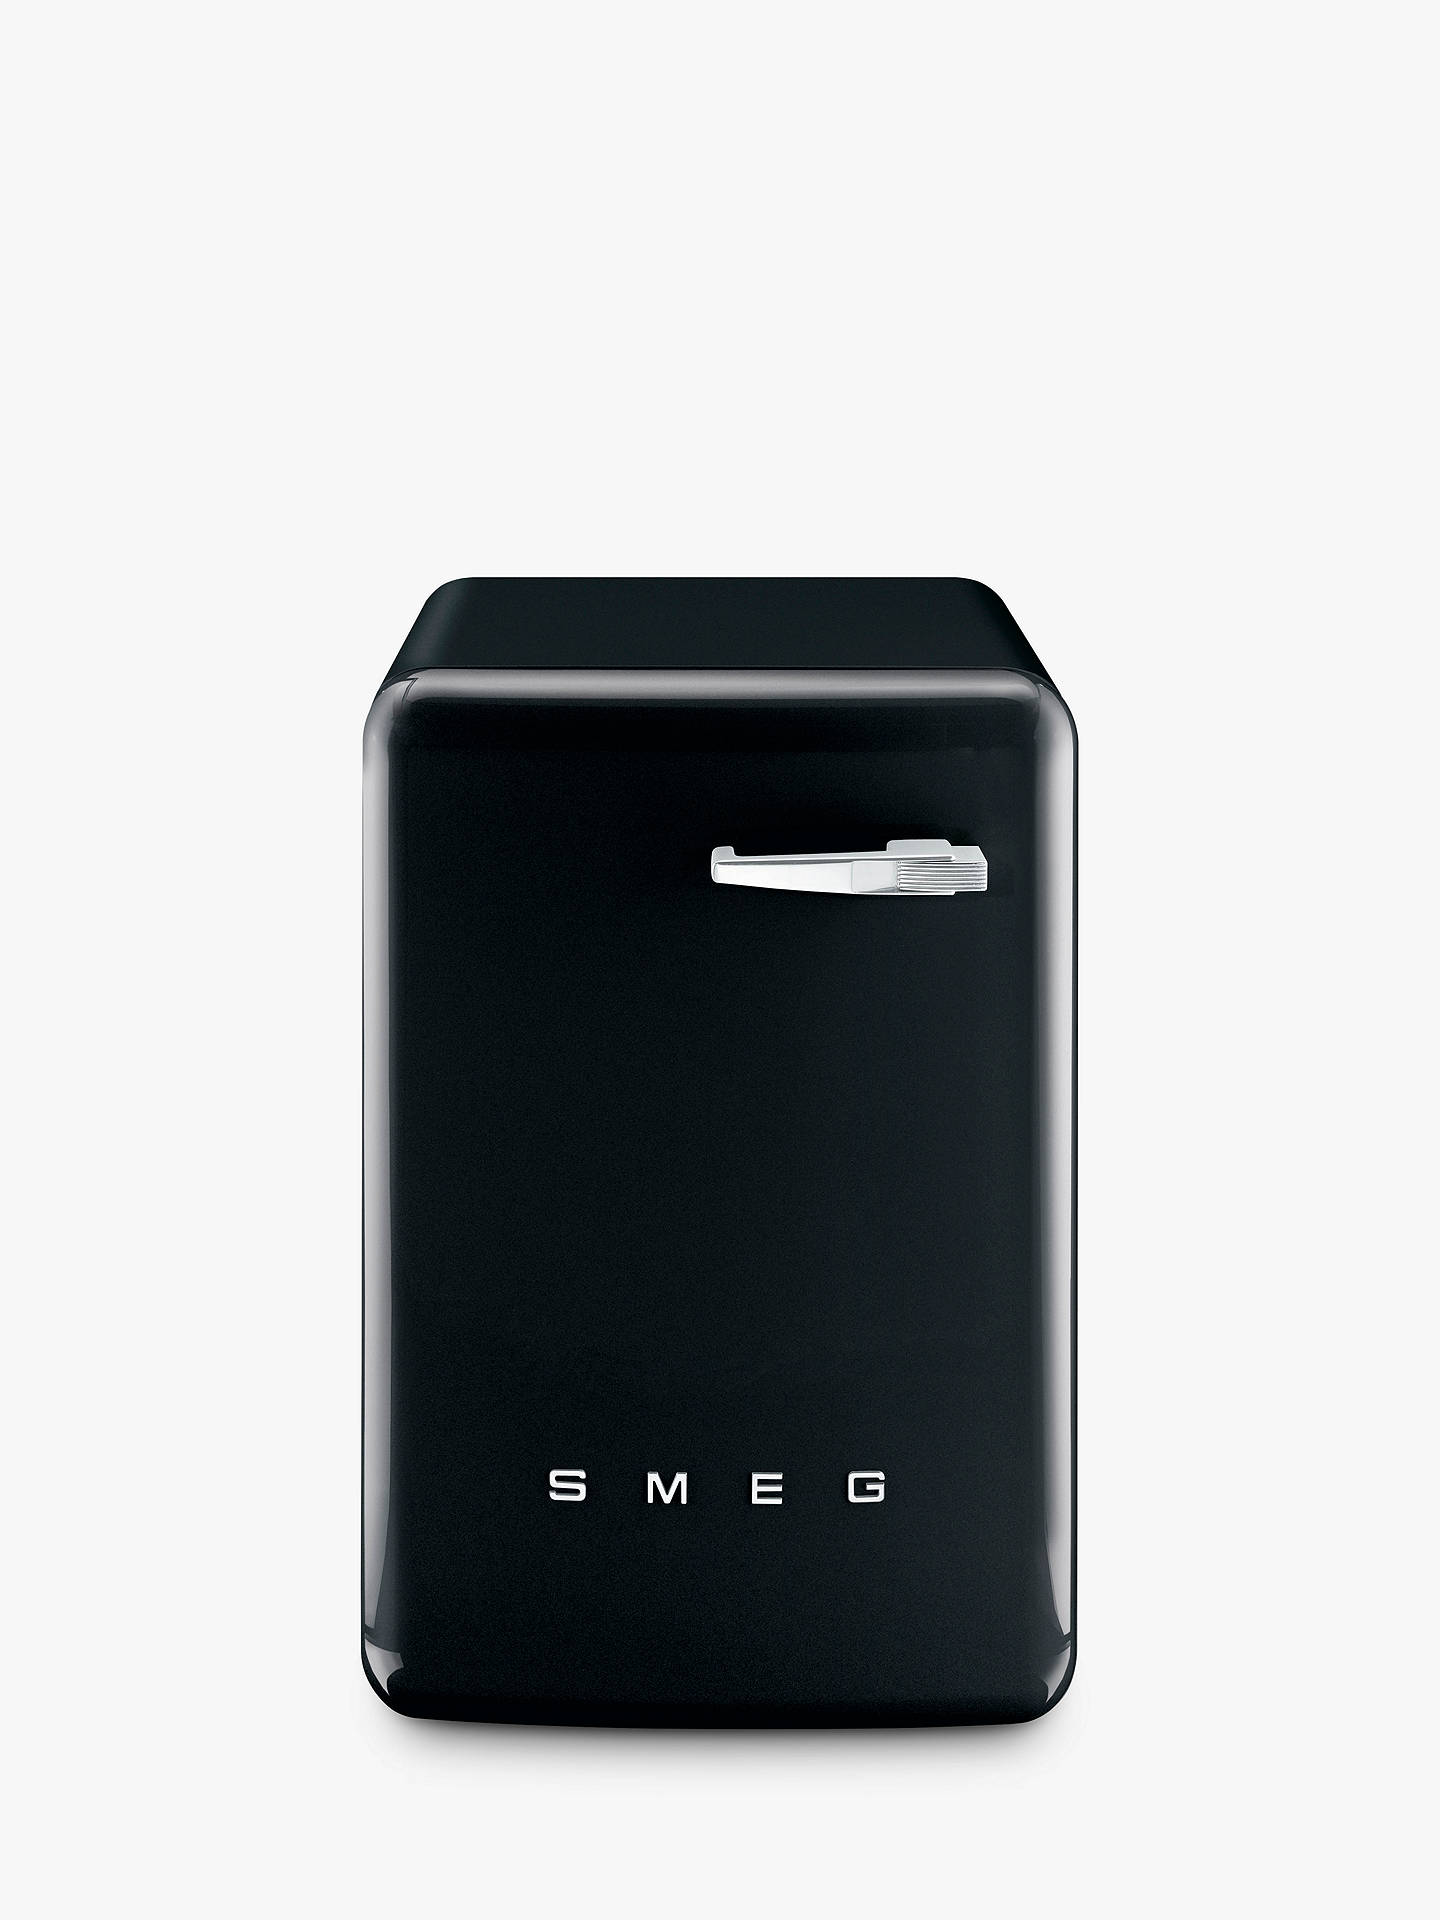 BuySmeg WMFABBL-2 Freestanding Washing Machine, 7kg Load, A++ Energy Rating, 1400rpm Spin, Black Gloss Online at johnlewis.com